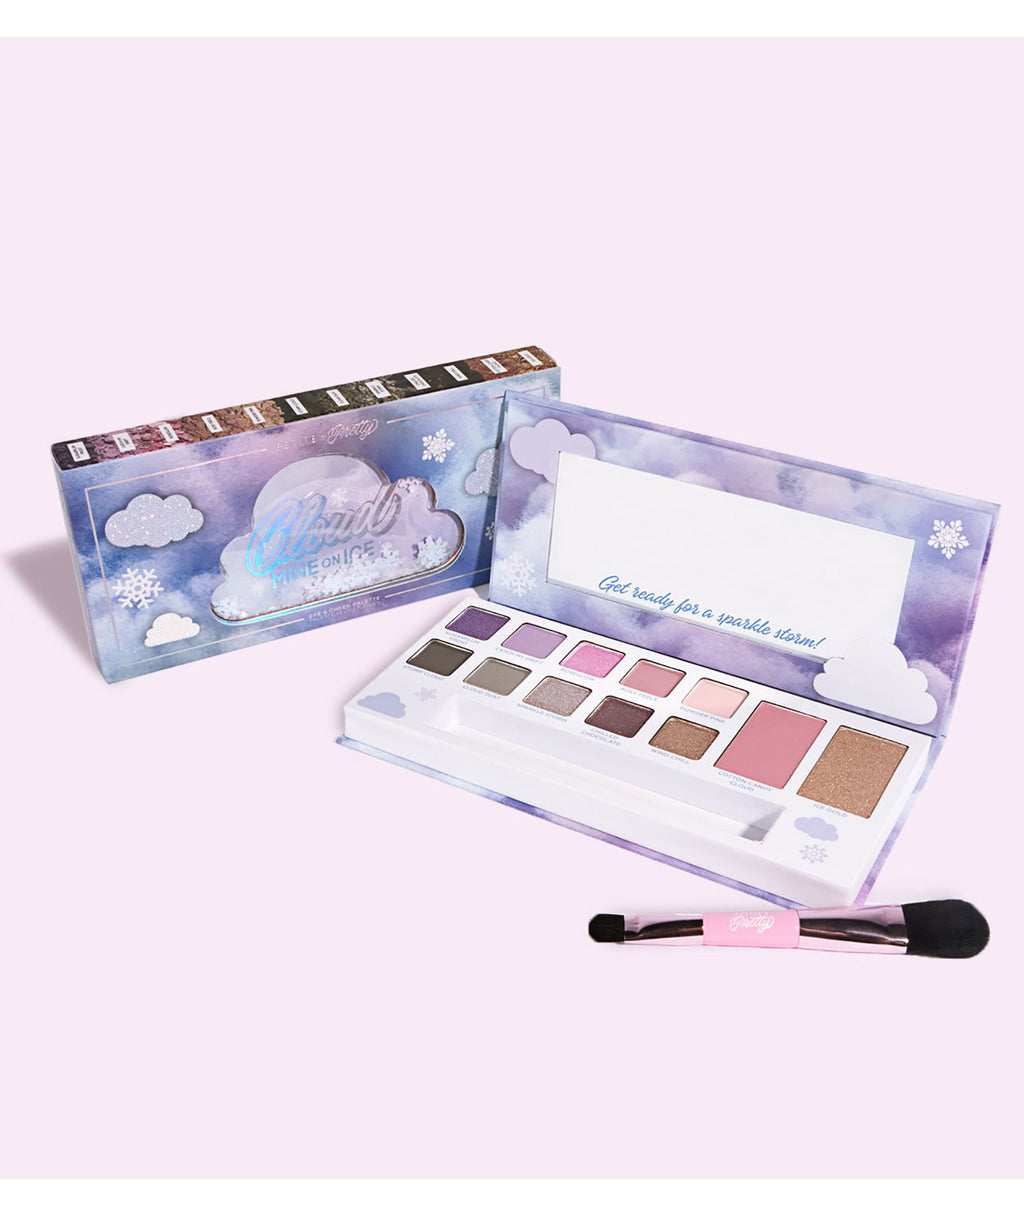 Petite 'n Pretty Cloud Mine On Ice Eye & Cheek Palette